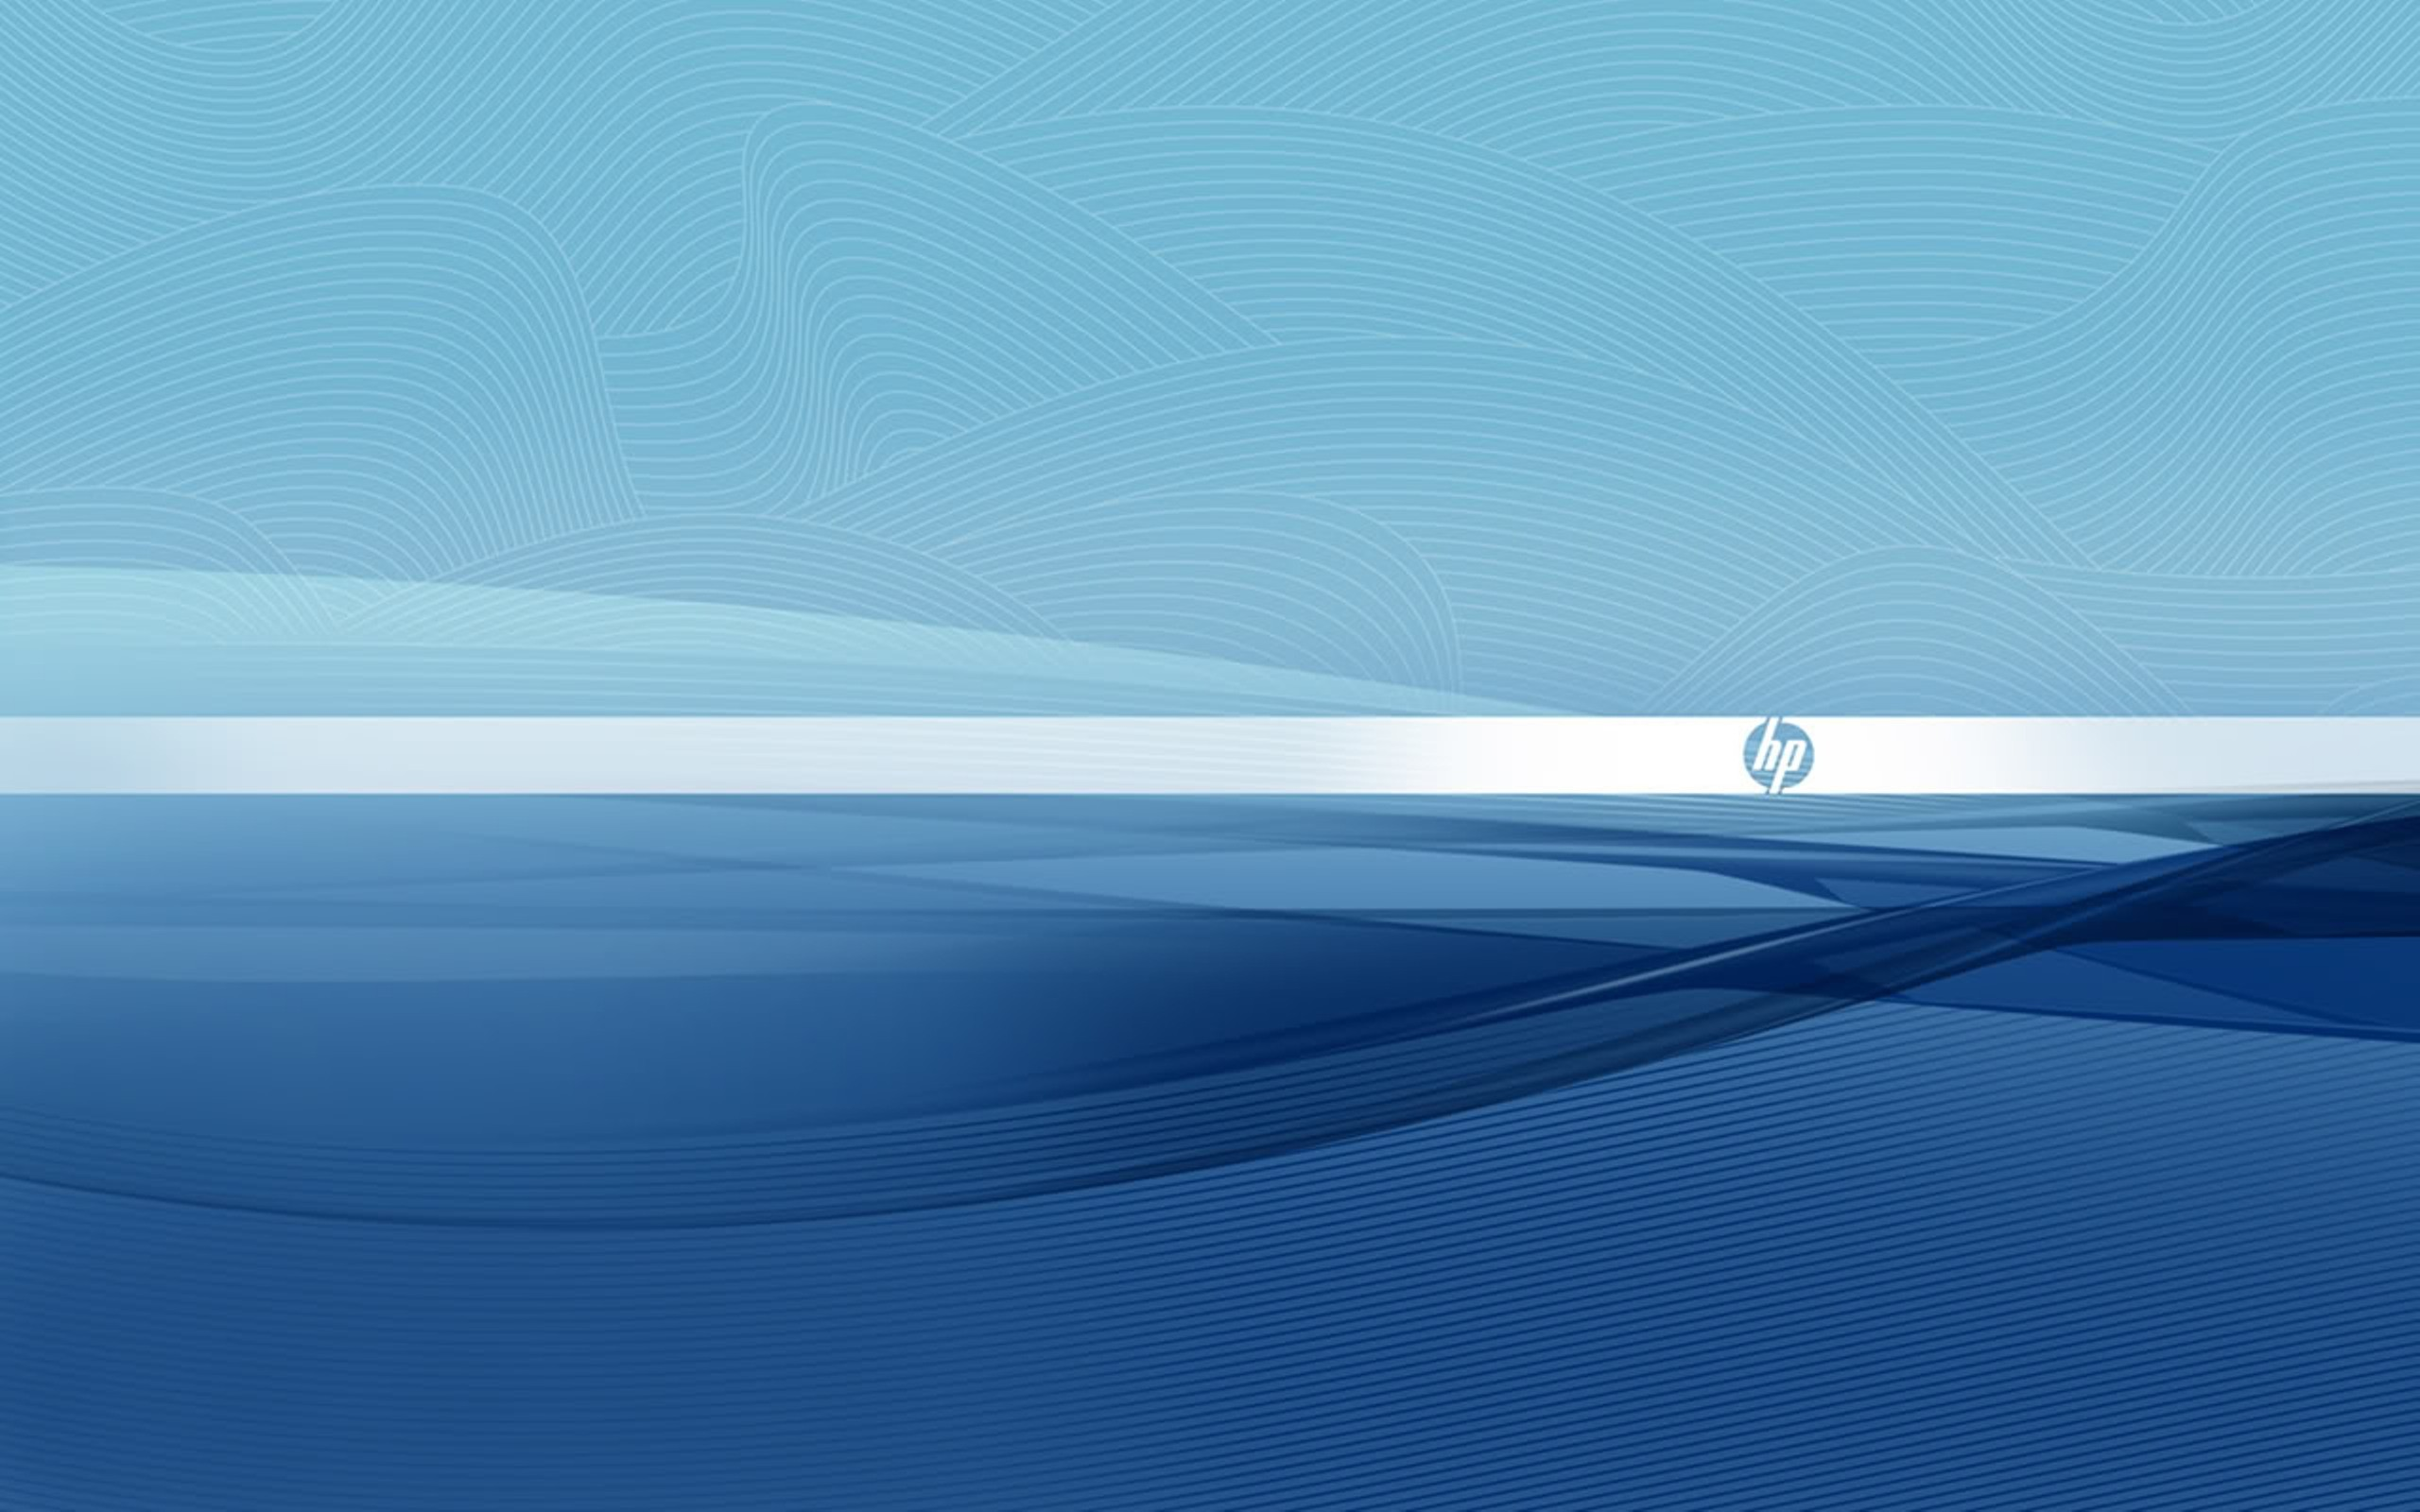 Res: 2560x1600, HP Wallpapers HD Download Free.